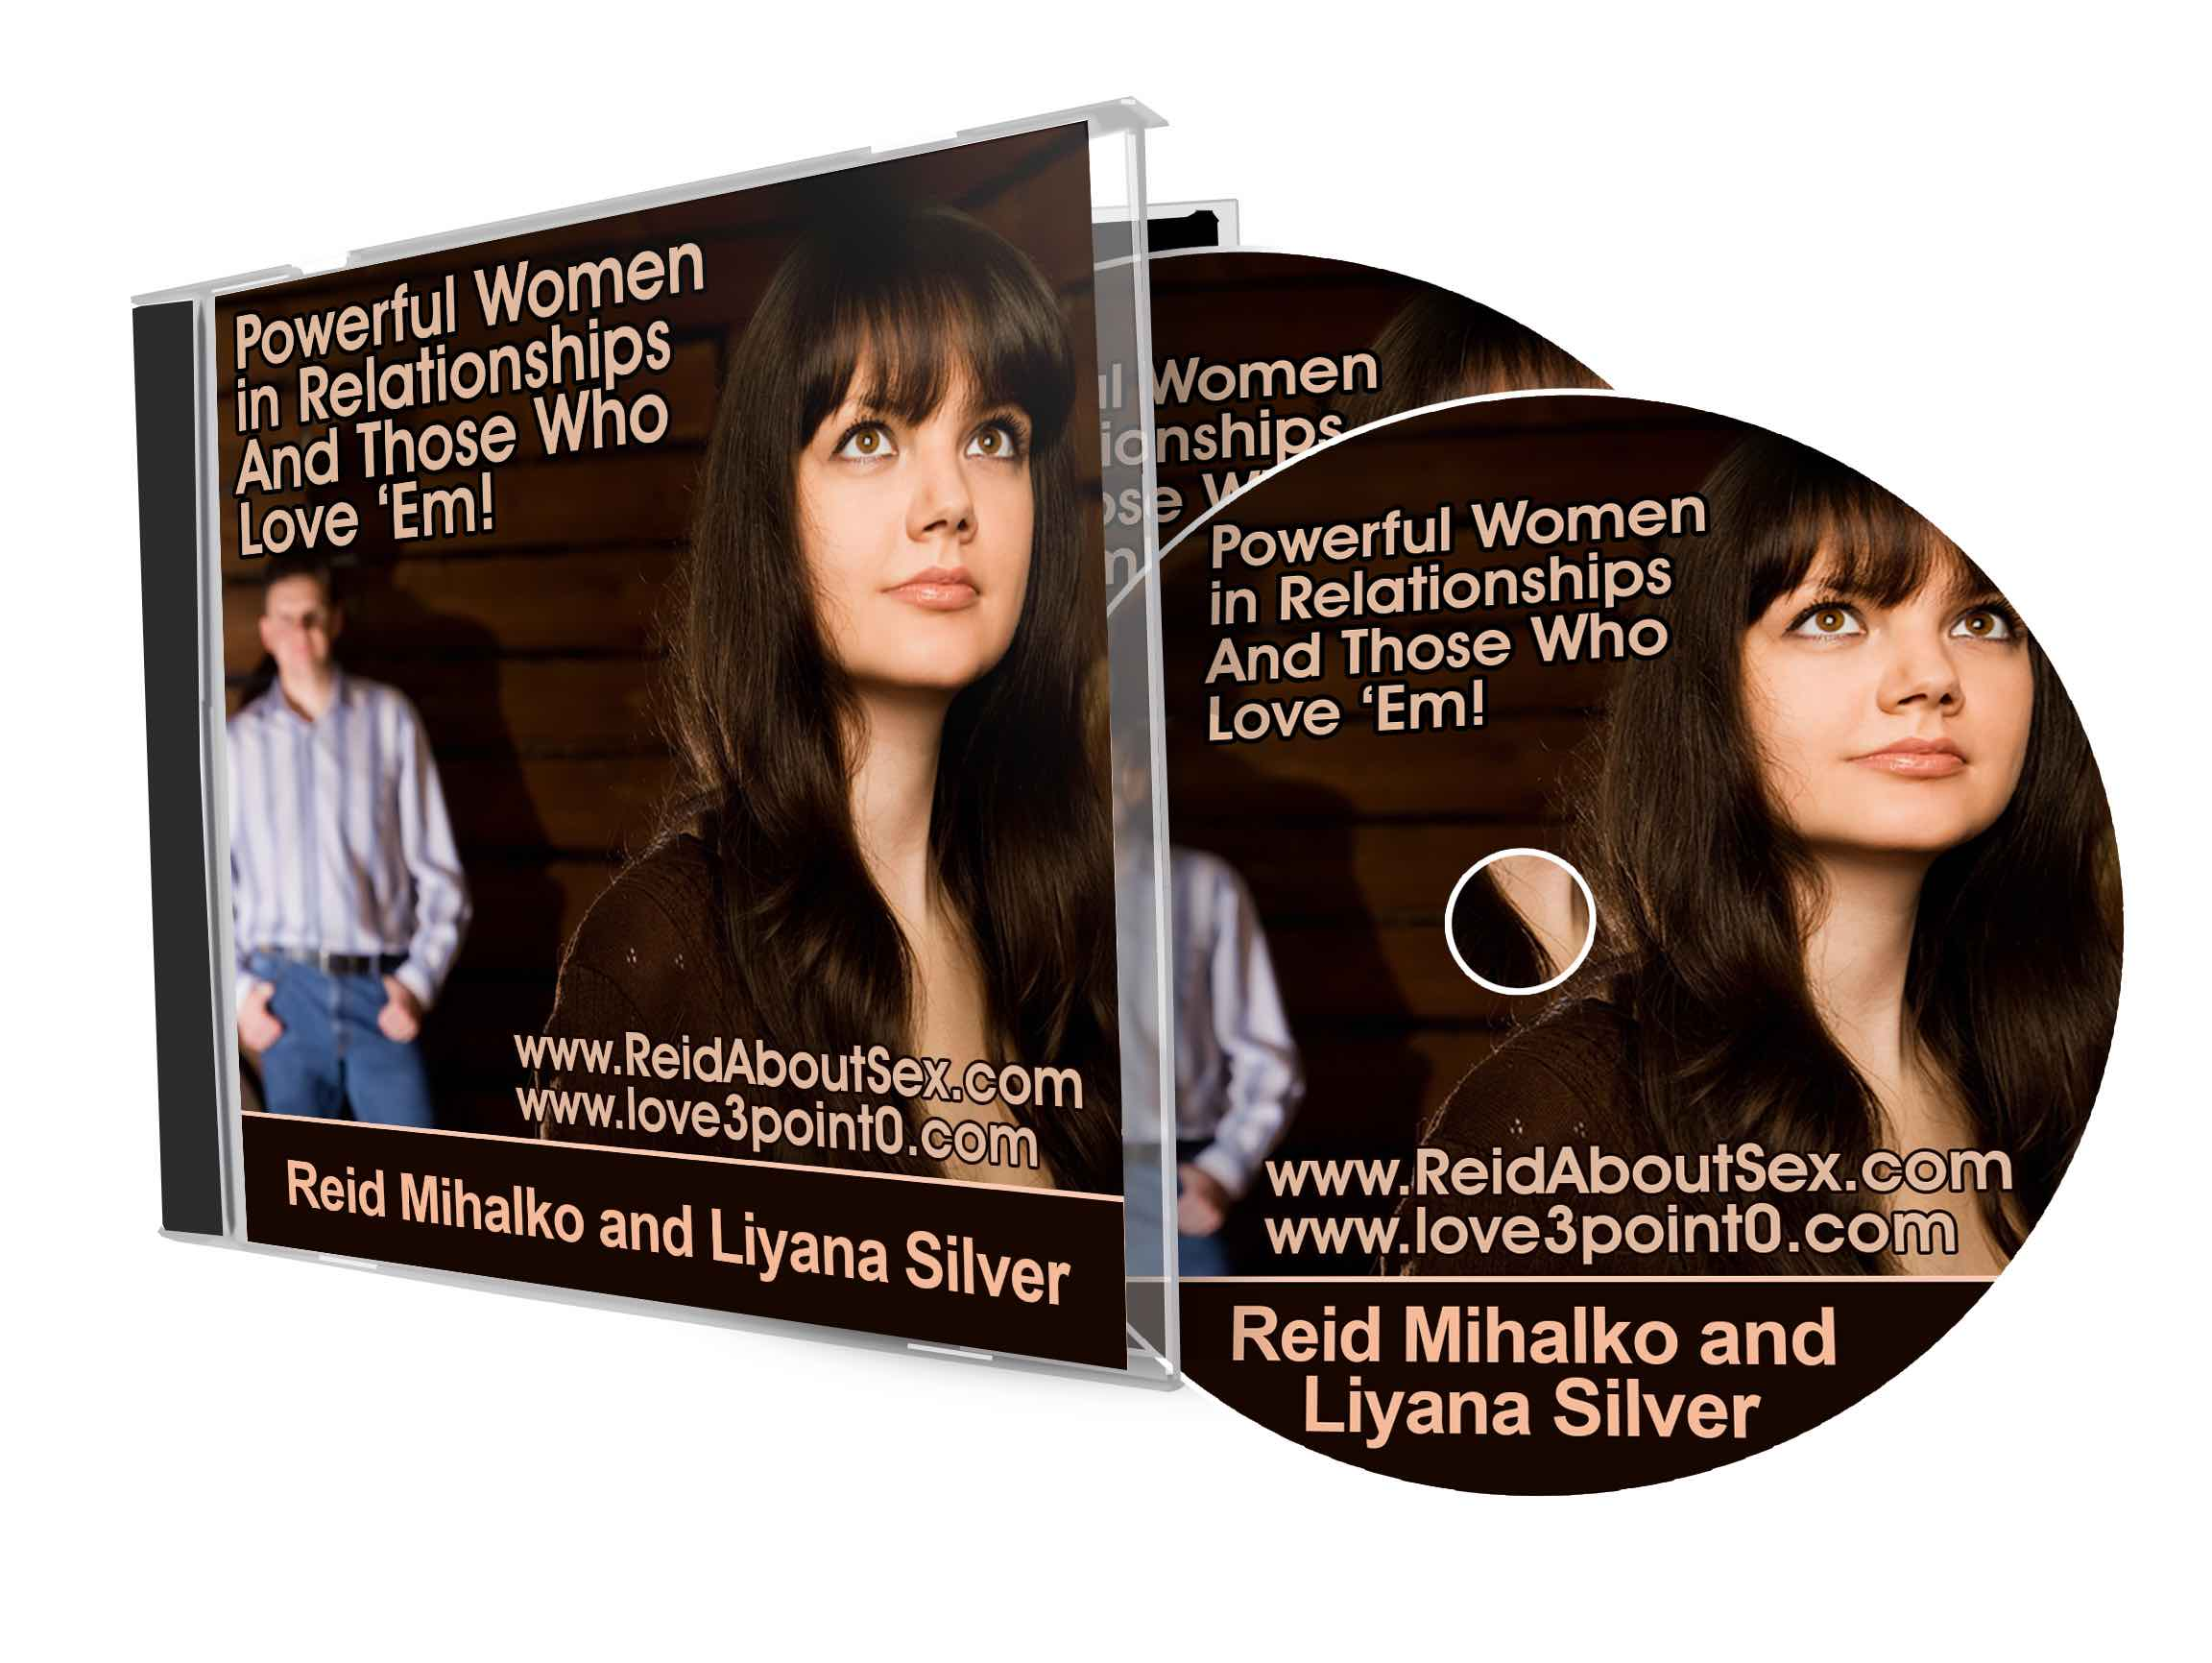 Powerful Women in Relationships And Those Who Love 'Em!